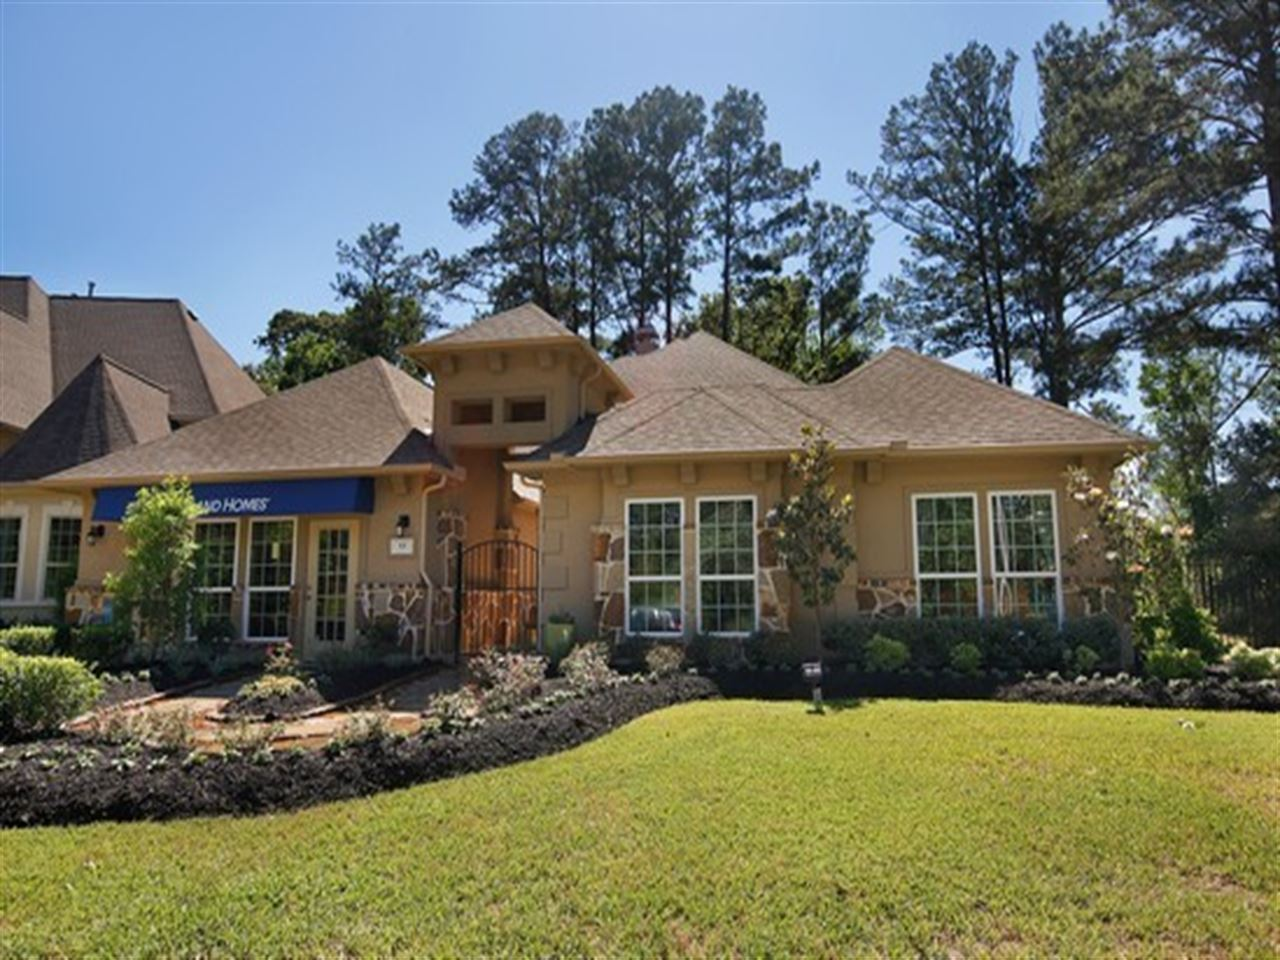 Ryland homes long meadow farms 70 rhapsody 1064779 for Ryland homes